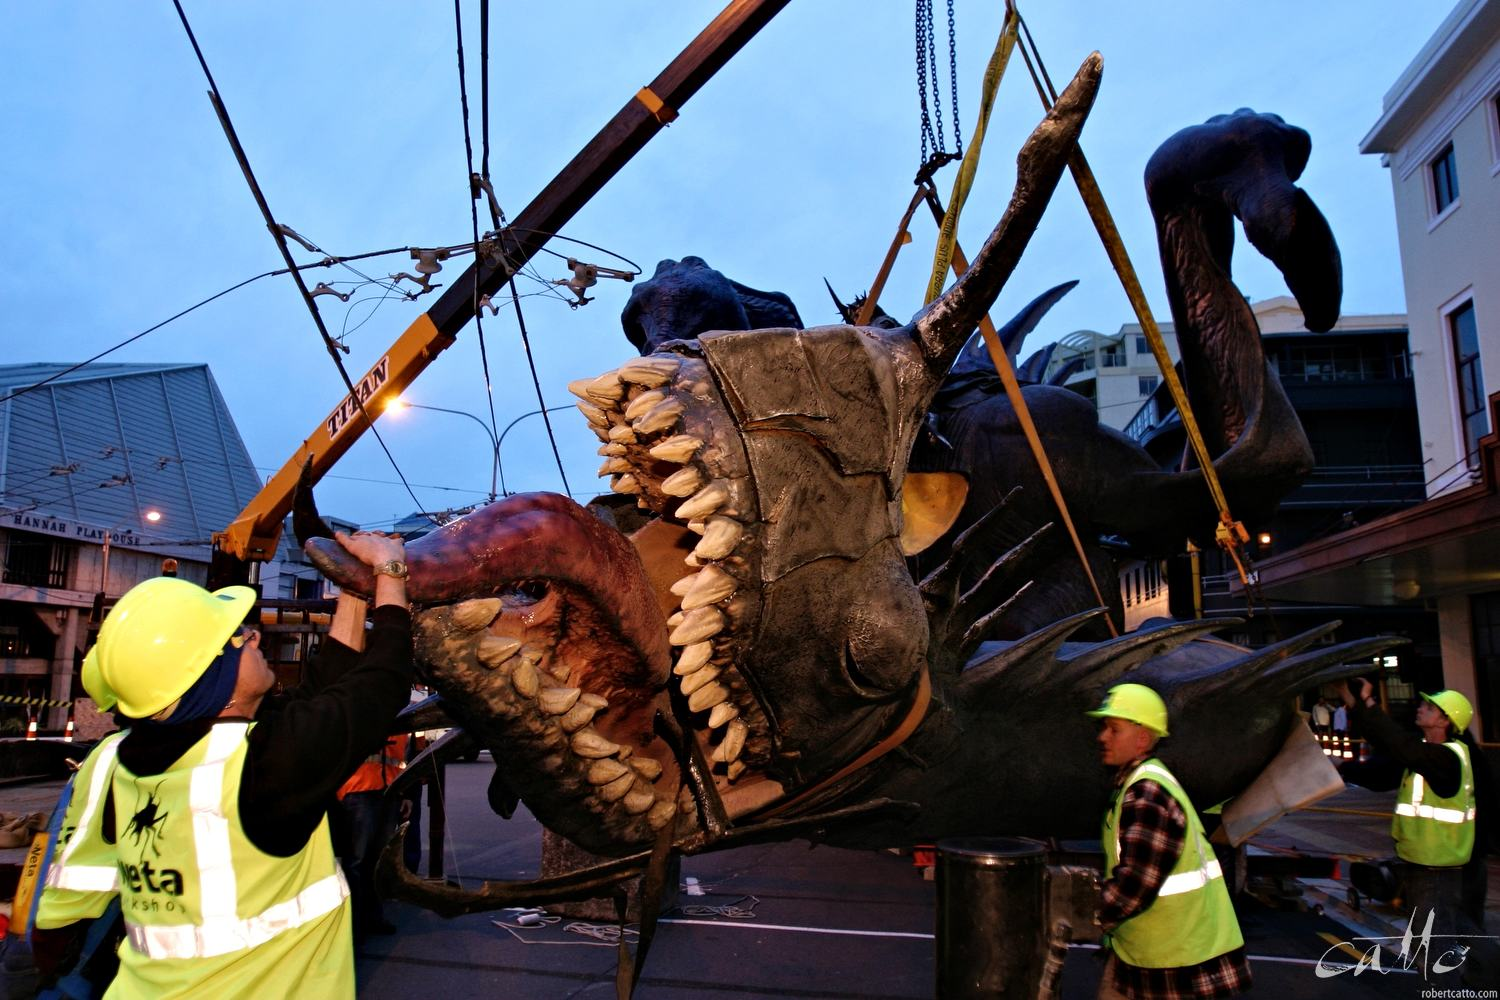 The Fell Beast with Dark Rider is installed on the Embassy Theatre in Wellington before the World Premiere of The Lord Of The Rings: The Return Of The King in 2003.